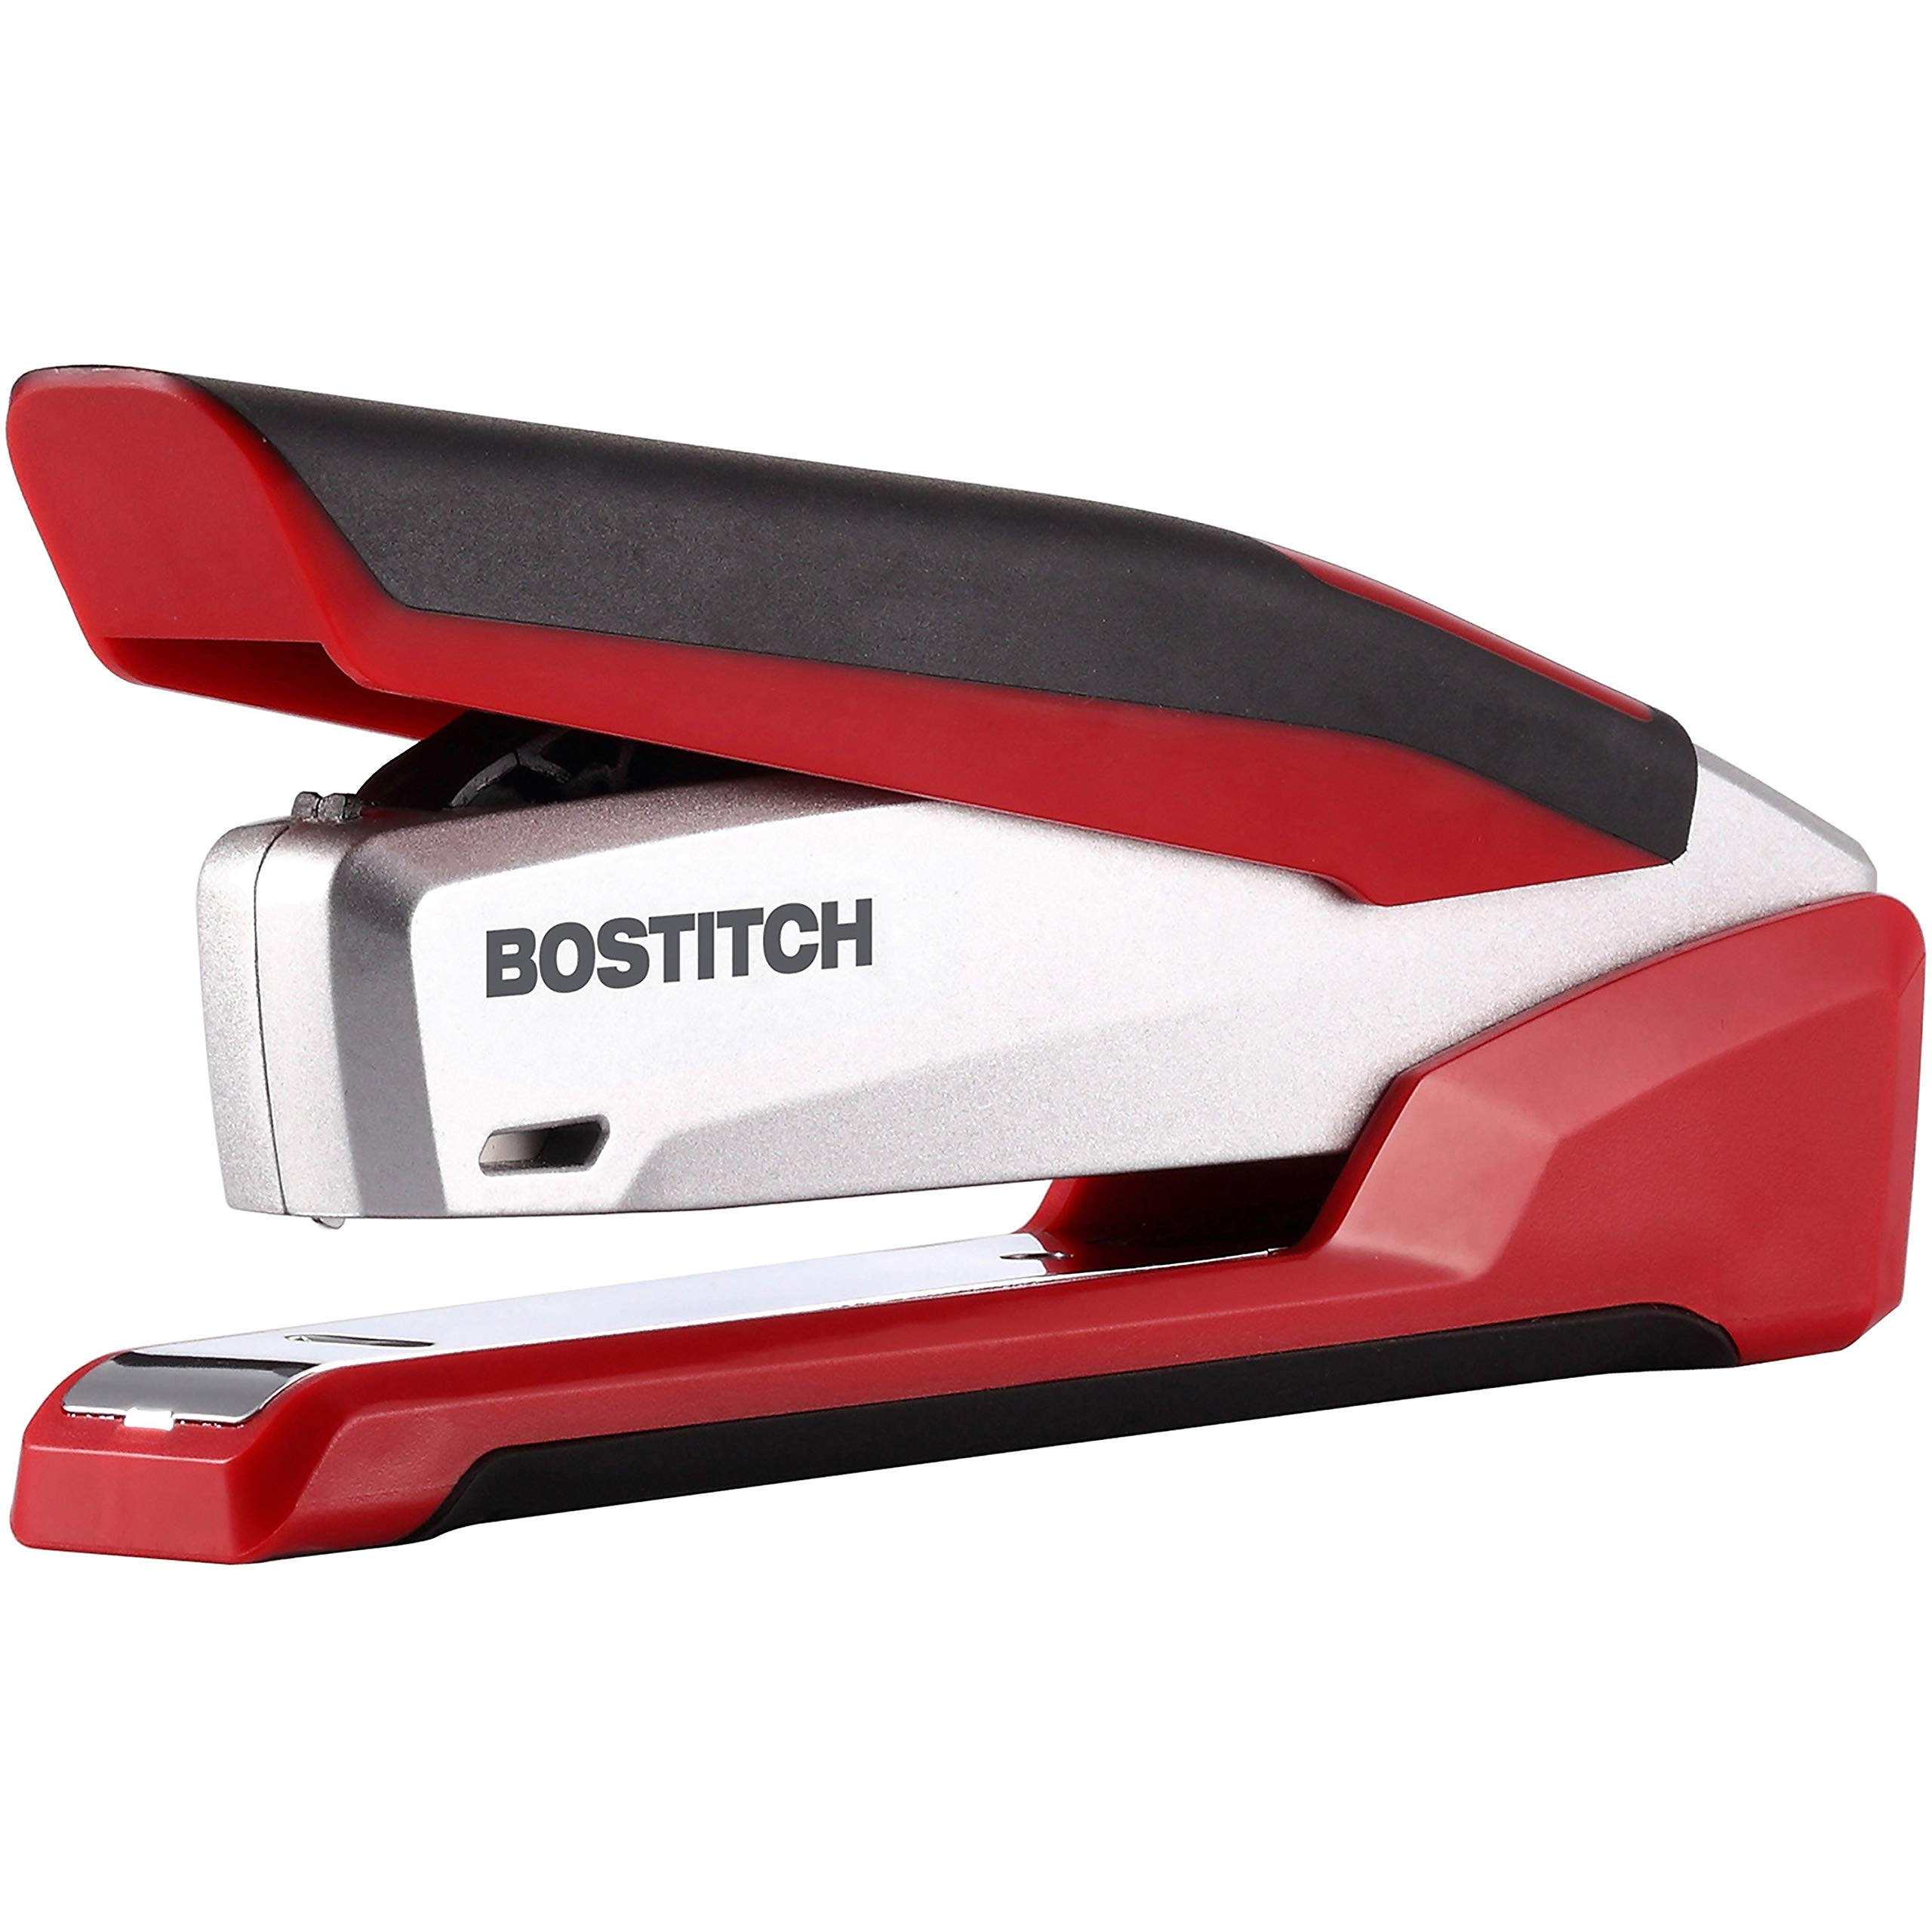 Bostitch, 1117, InPower Spring-Powered Premium Desktop Stapler, 28-Sheet Capacity, Red/Silver by Bostitch Office